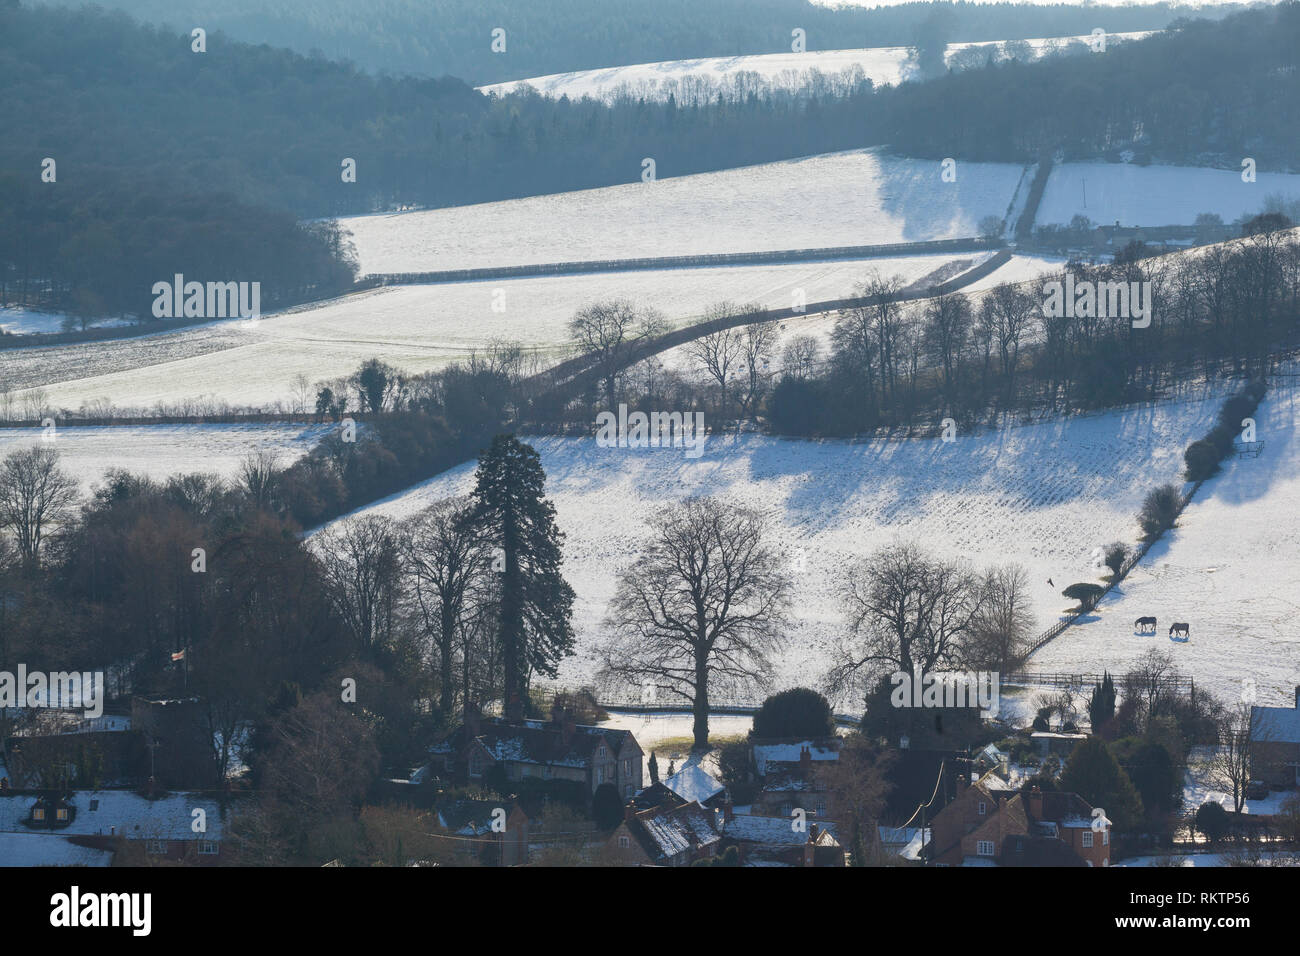 Winter view of the Chiltern village of Turville with snow on the ground. - Stock Image